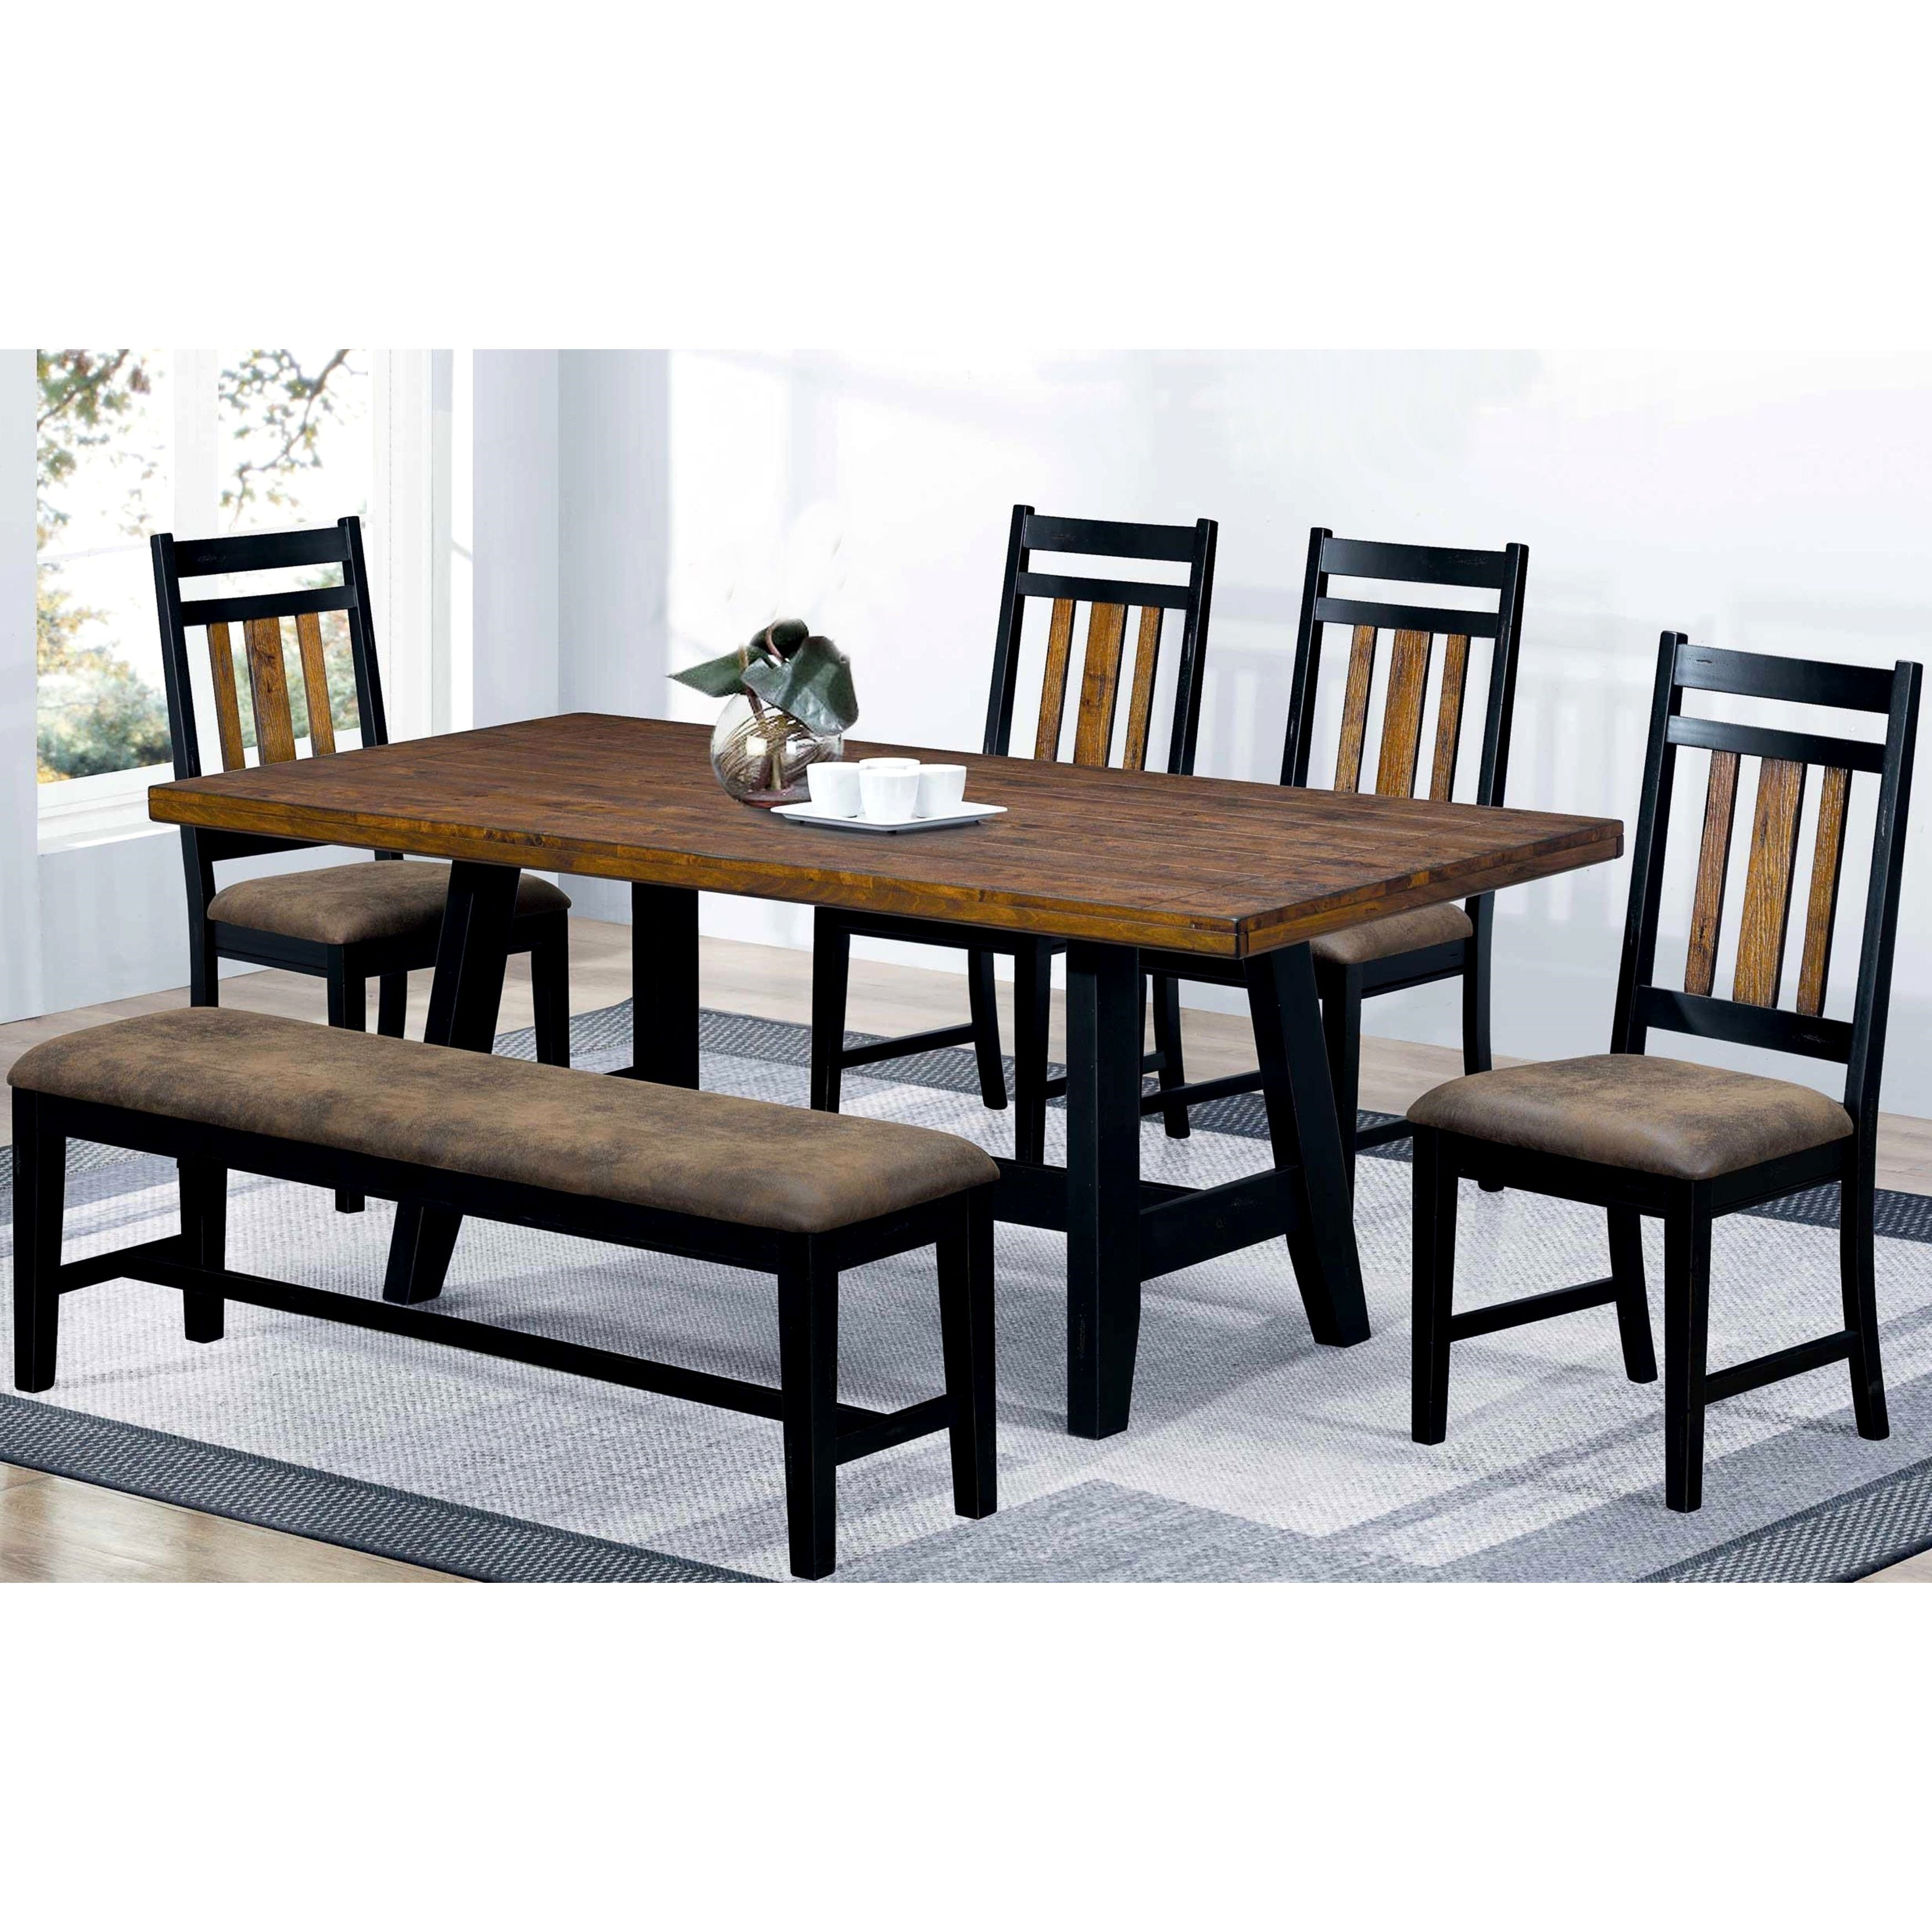 Superb Monica Country Style Plank Design Two Tone Dining Set Creativecarmelina Interior Chair Design Creativecarmelinacom